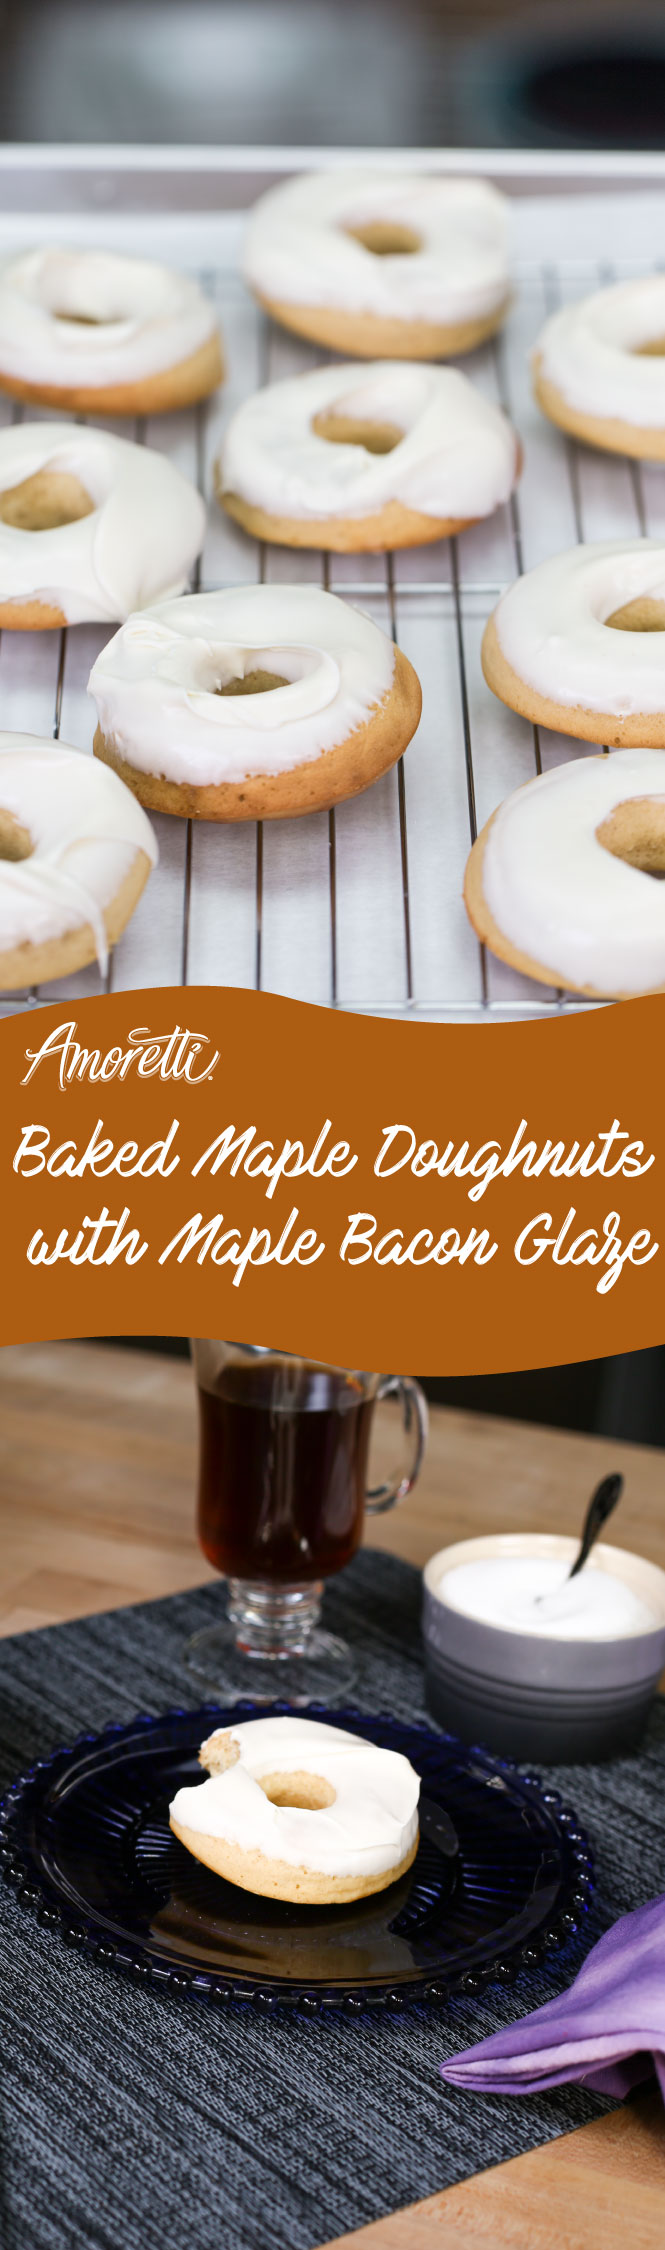 Amoretti Baked Maple Doughnuts with Maple Bacon Glaze: This amazing donut recipe has a sweet and tender fluffy texture with amazing maple bacon flavor!